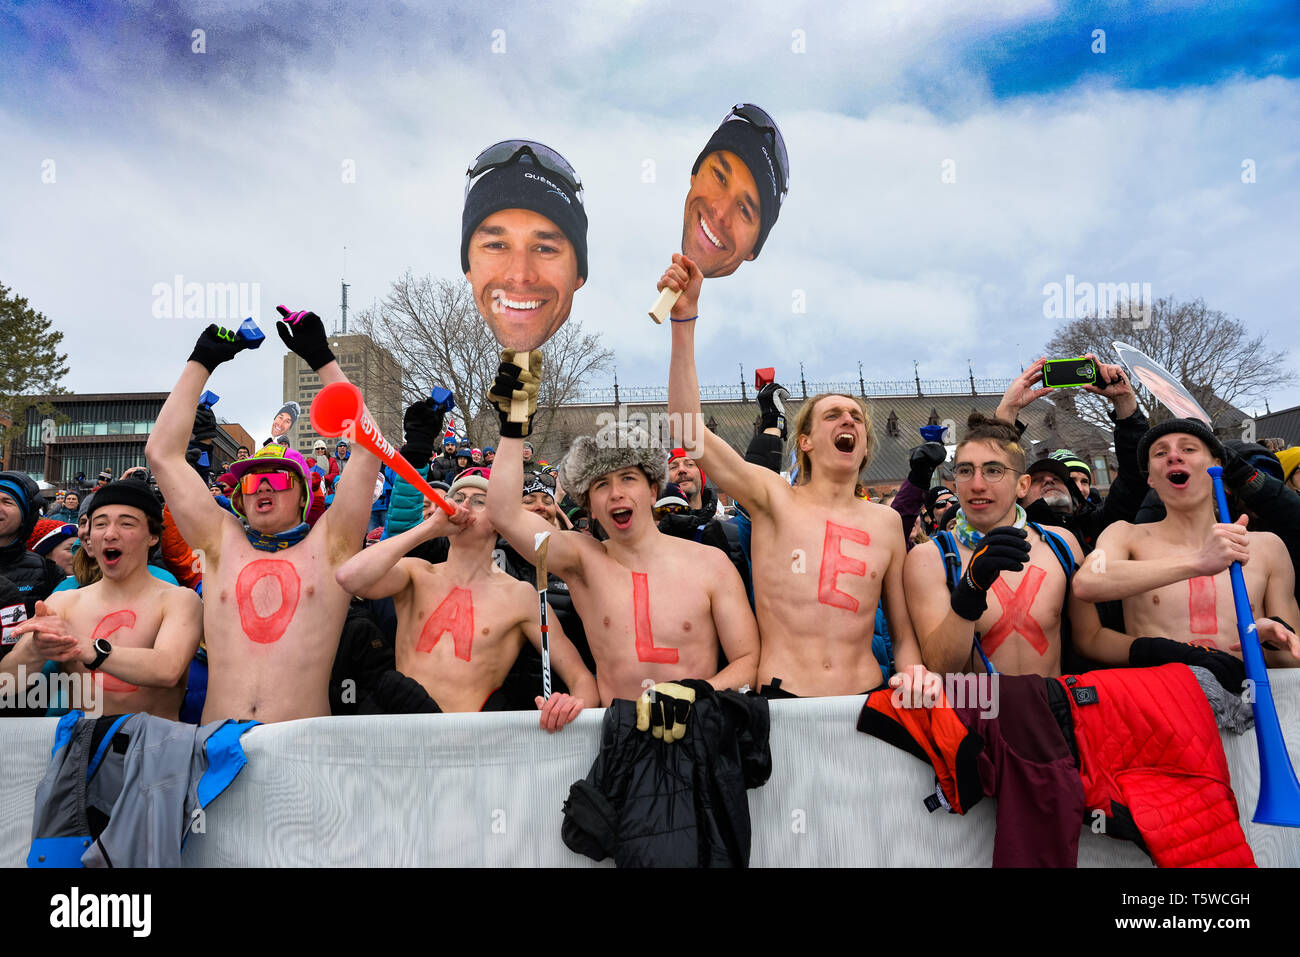 Fans of Canada's Alex Harvey after Harvey finished second in the men's 15-k World Cup cross country ski race classic in Québec City. - Stock Image